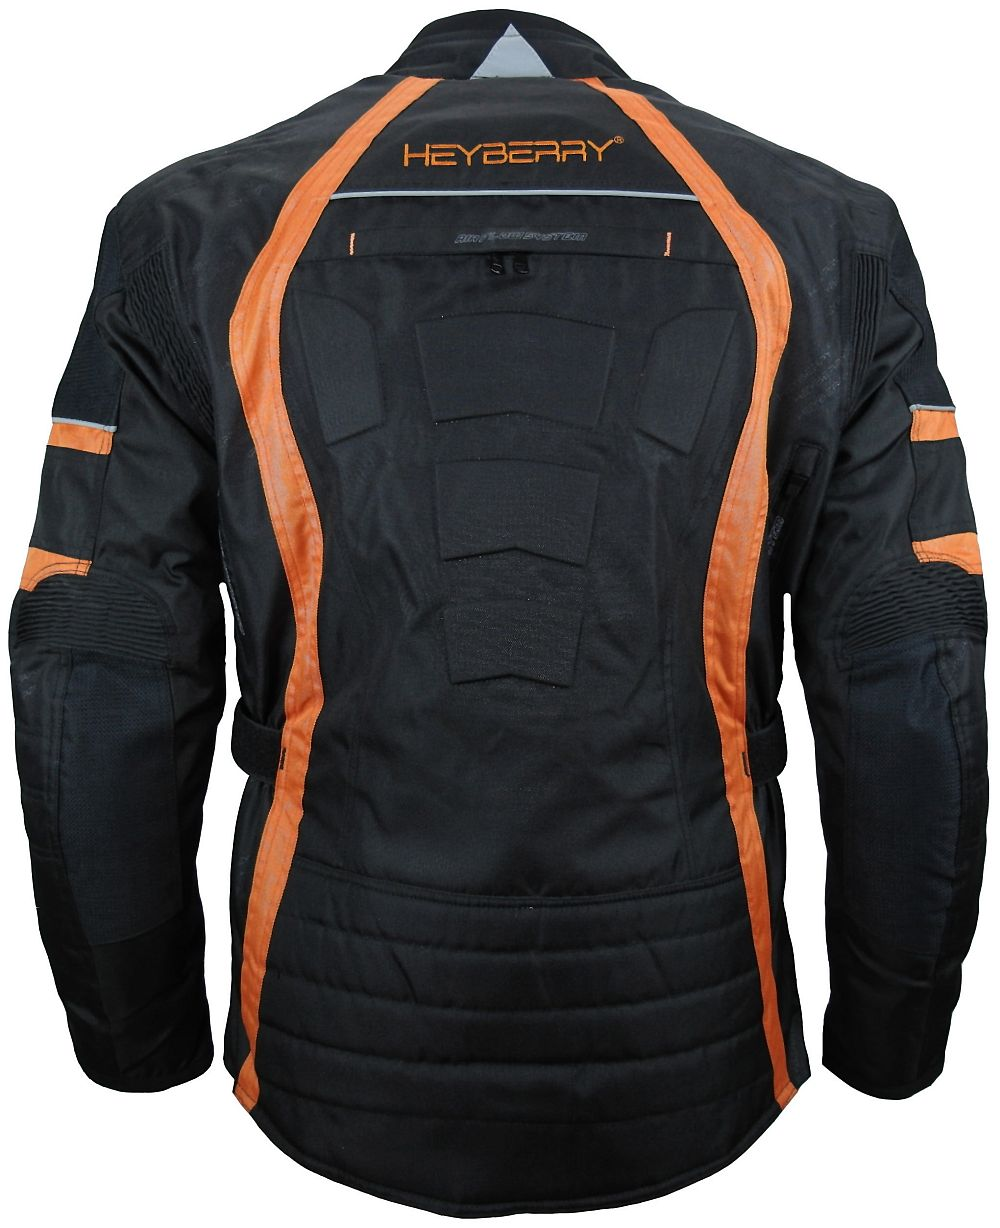 herren touren motorradjacke textil heyberry schwarz orange. Black Bedroom Furniture Sets. Home Design Ideas